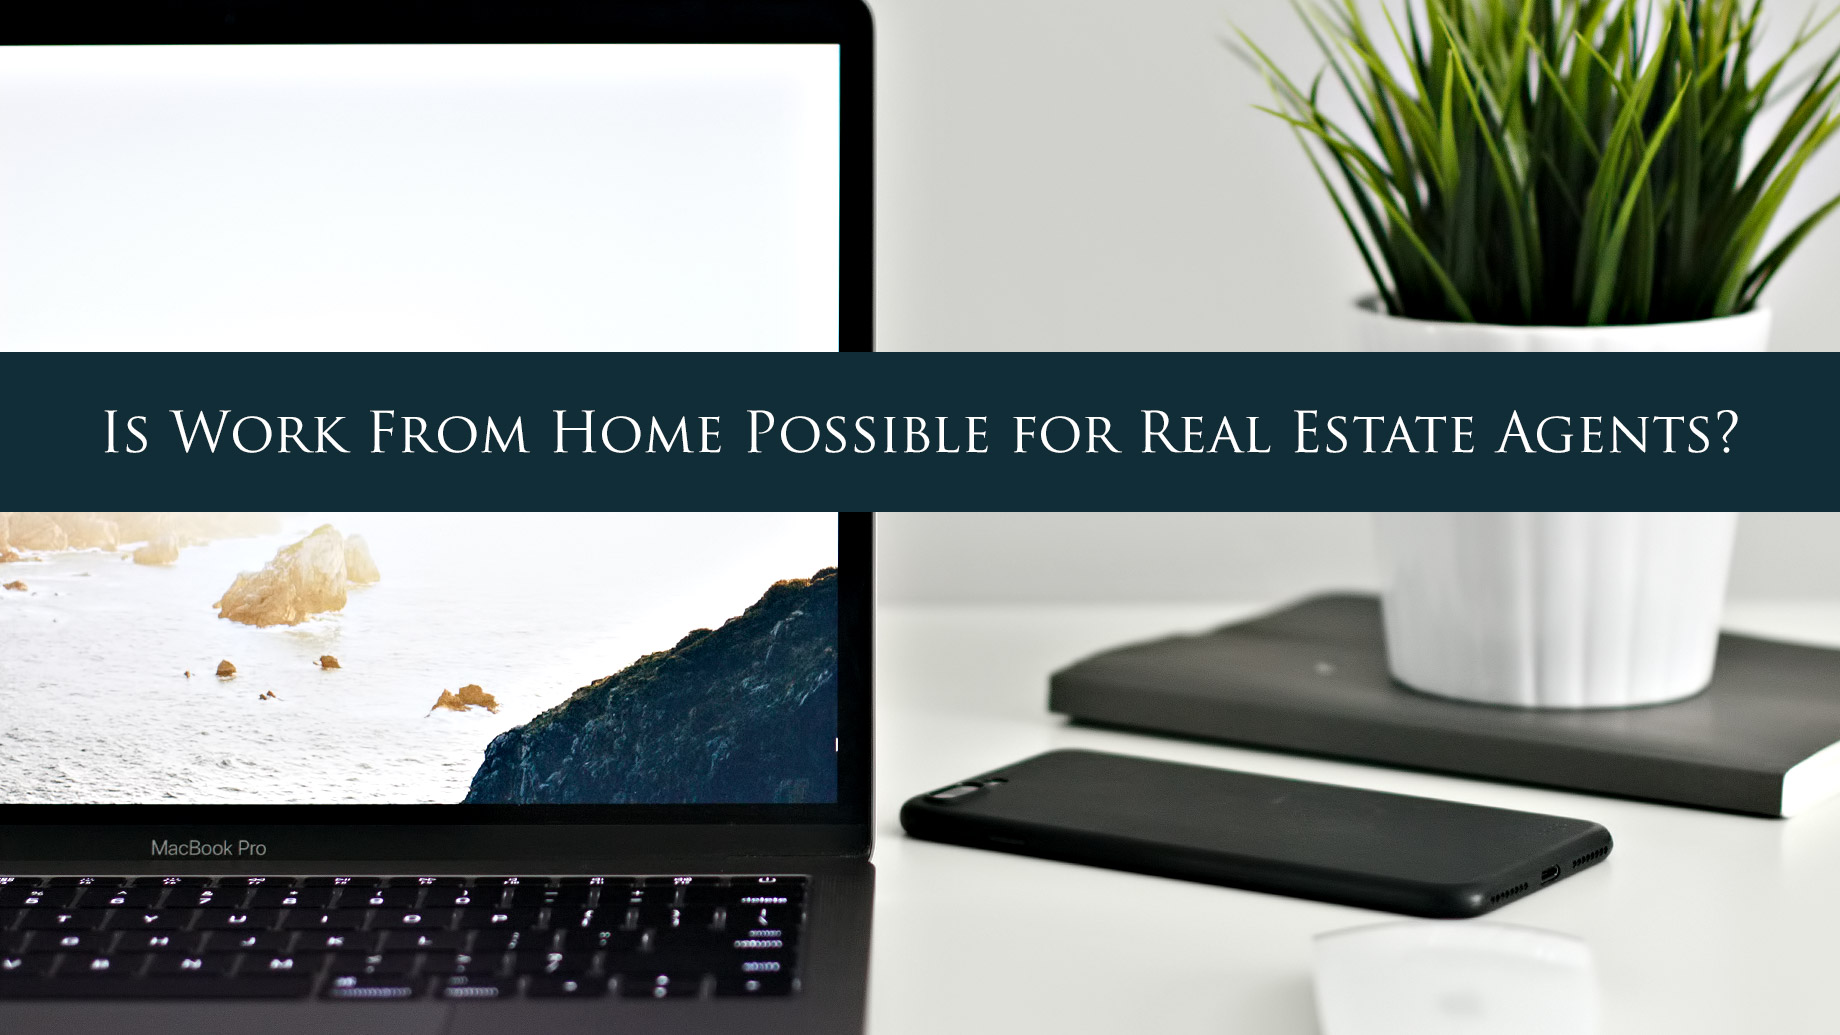 Is Work From Home Possible for Real Estate Agents?